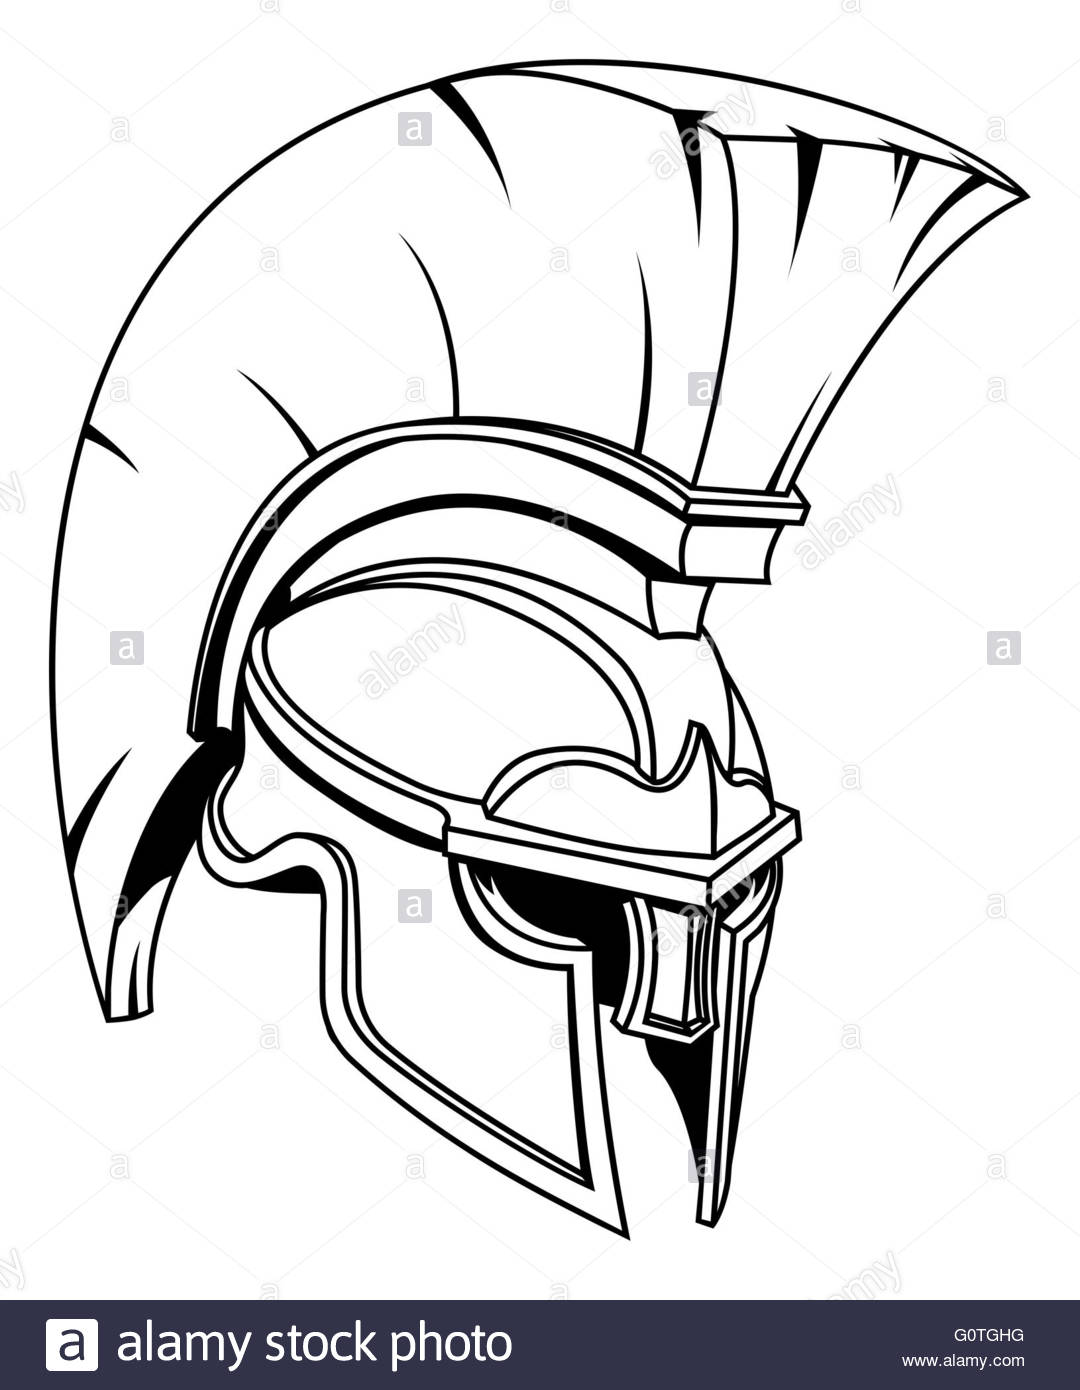 Roman Helmet Drawing